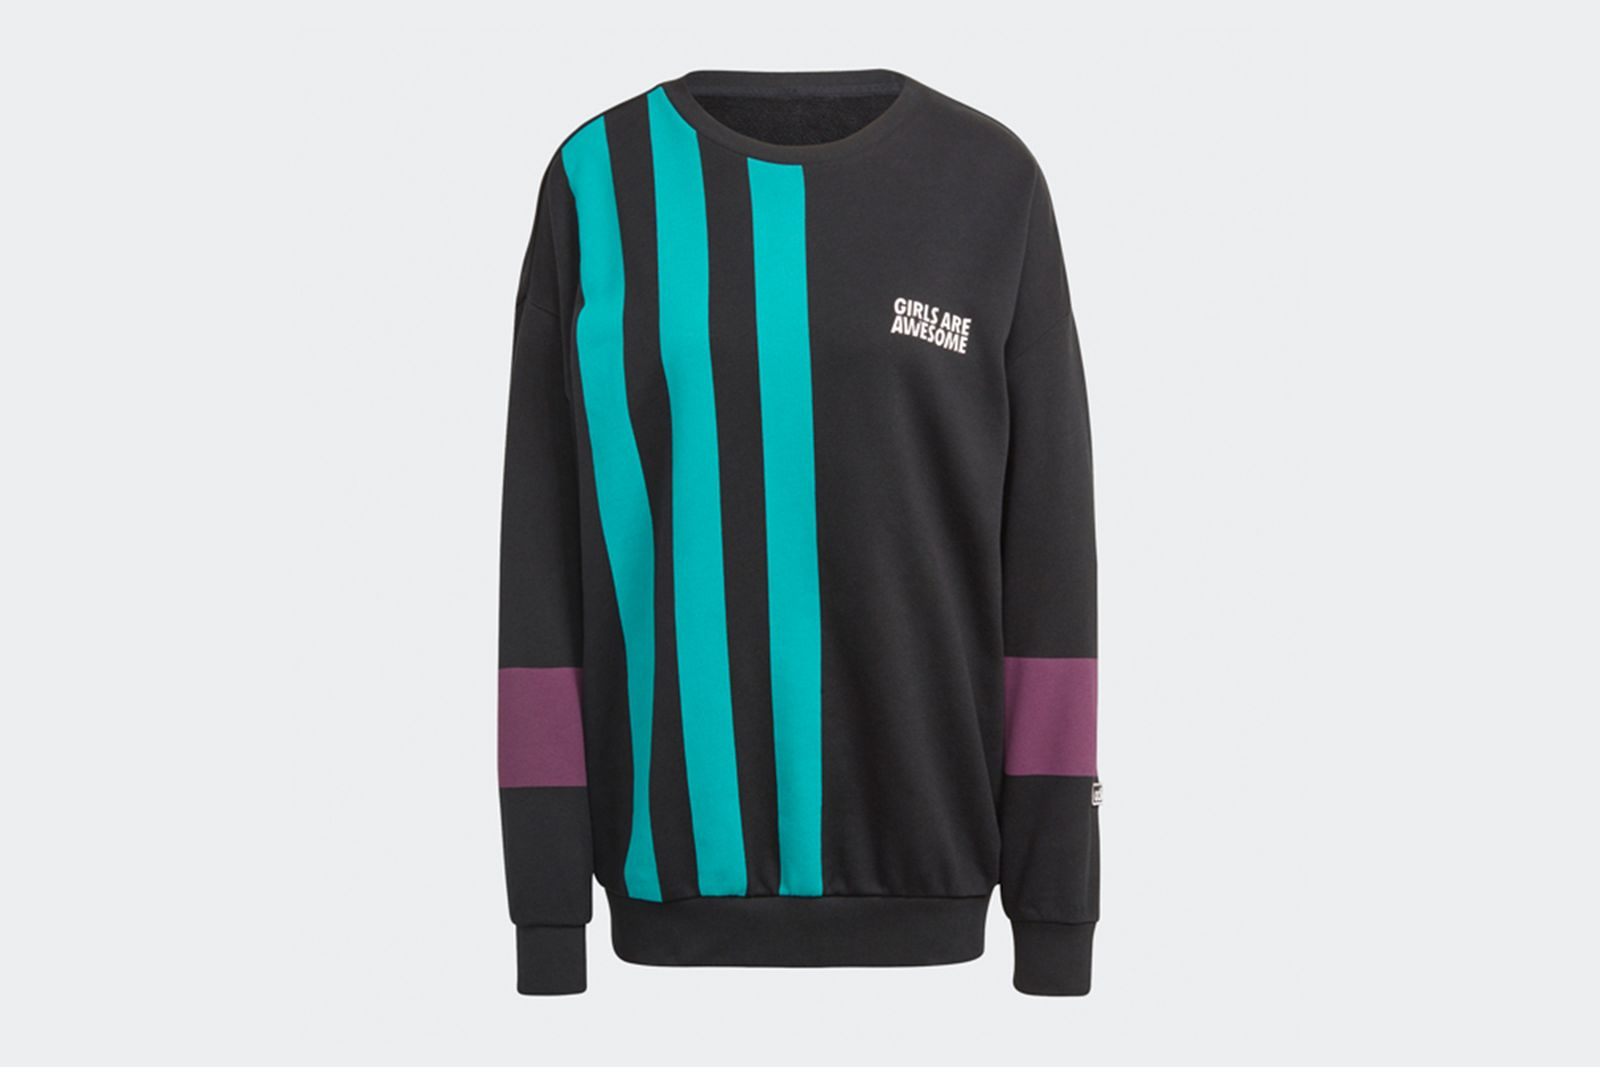 girls-are-awesome-adidas-originals-forum-release-date-price-prdct-10